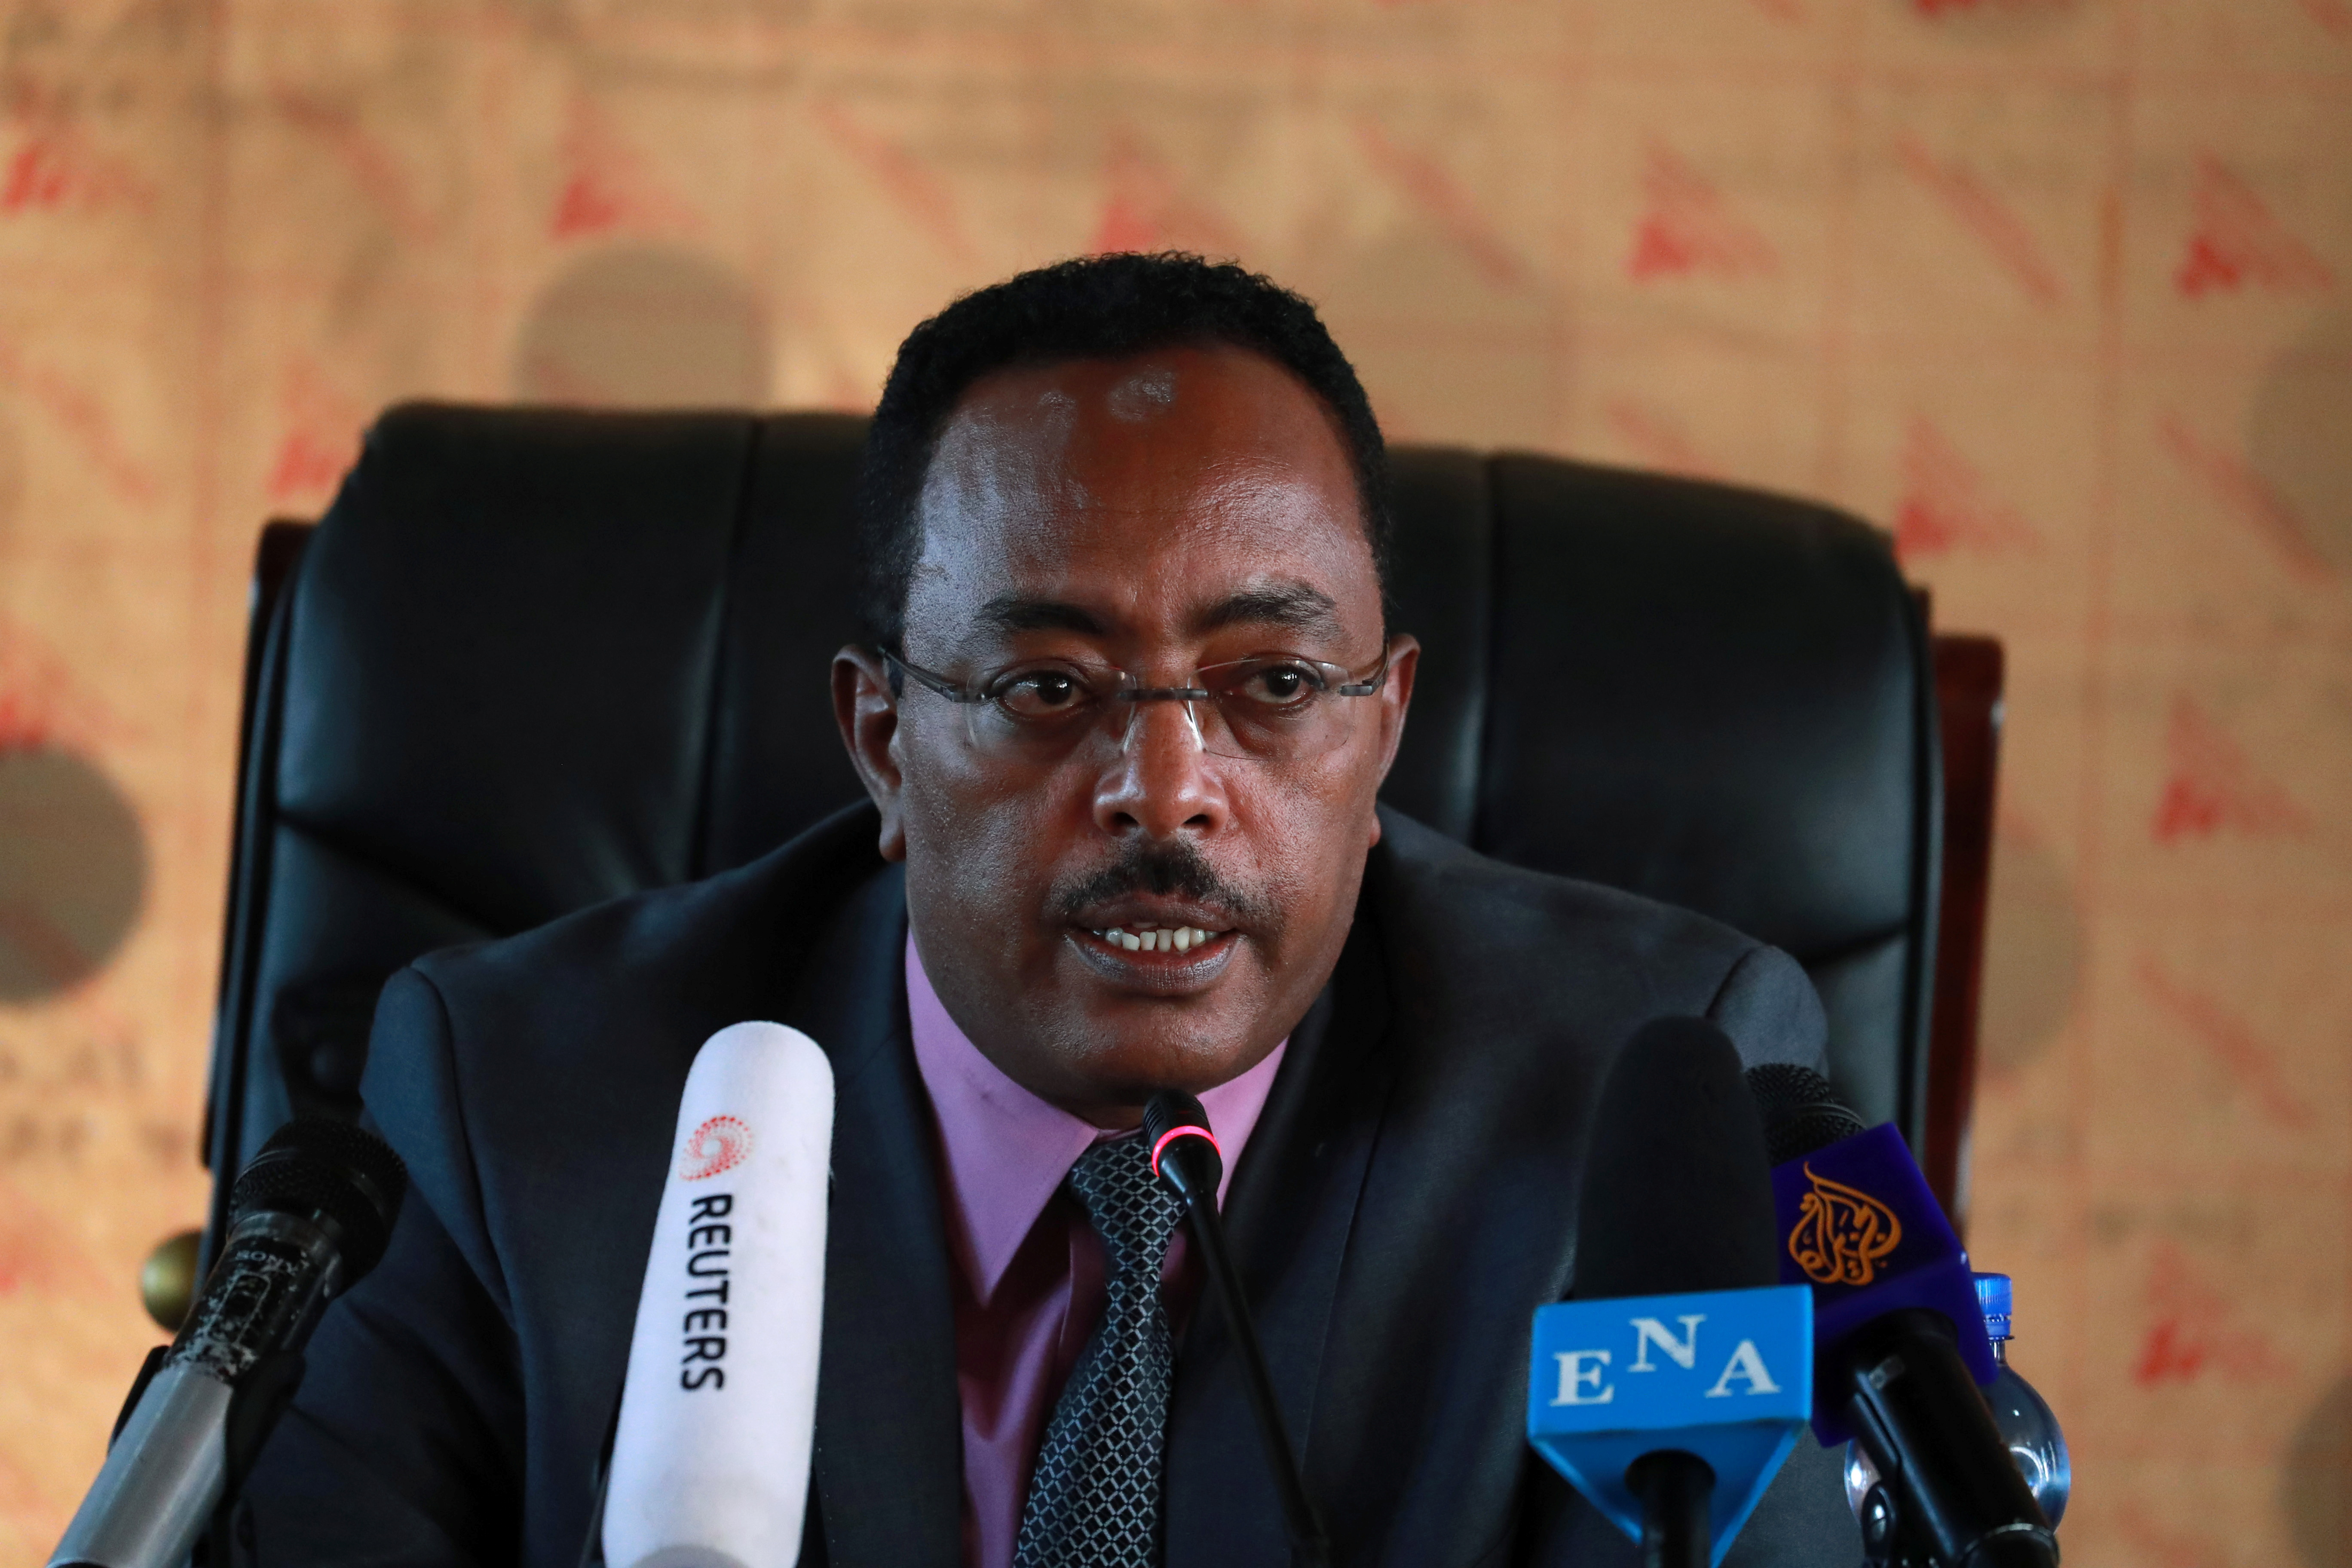 Ethiopia's Redwan Hussein, spokesperson for the newly established State of Emergency task force and State Minister for the Foreign Affairs, speaks during a news conference regarding the fighting between Ethiopian National Defence Force (ENDF) and the Tigray Regional Special Forces, at the Ministry of Foreign Affairs, in Addis Ababa, Ethiopia November 23, 2020. REUTERS/Tiksa Negeri